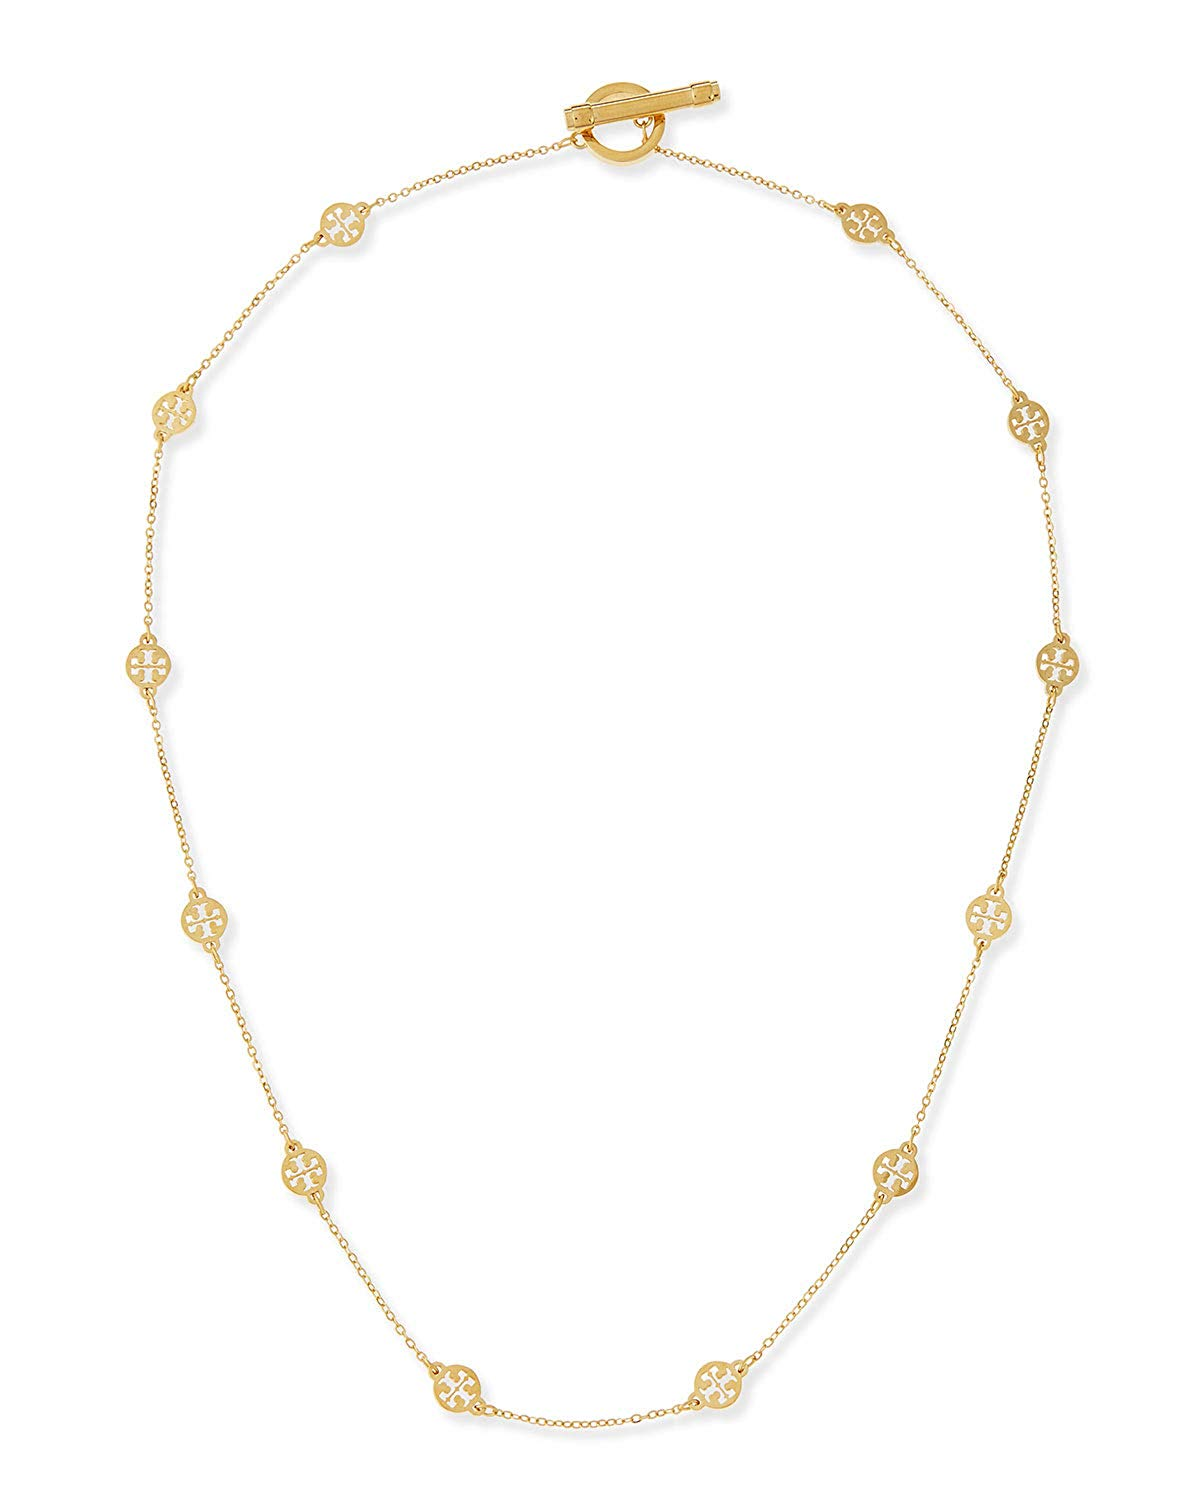 Tory Burch 50681 Gold Tone Logo Toggle Short Necklace.